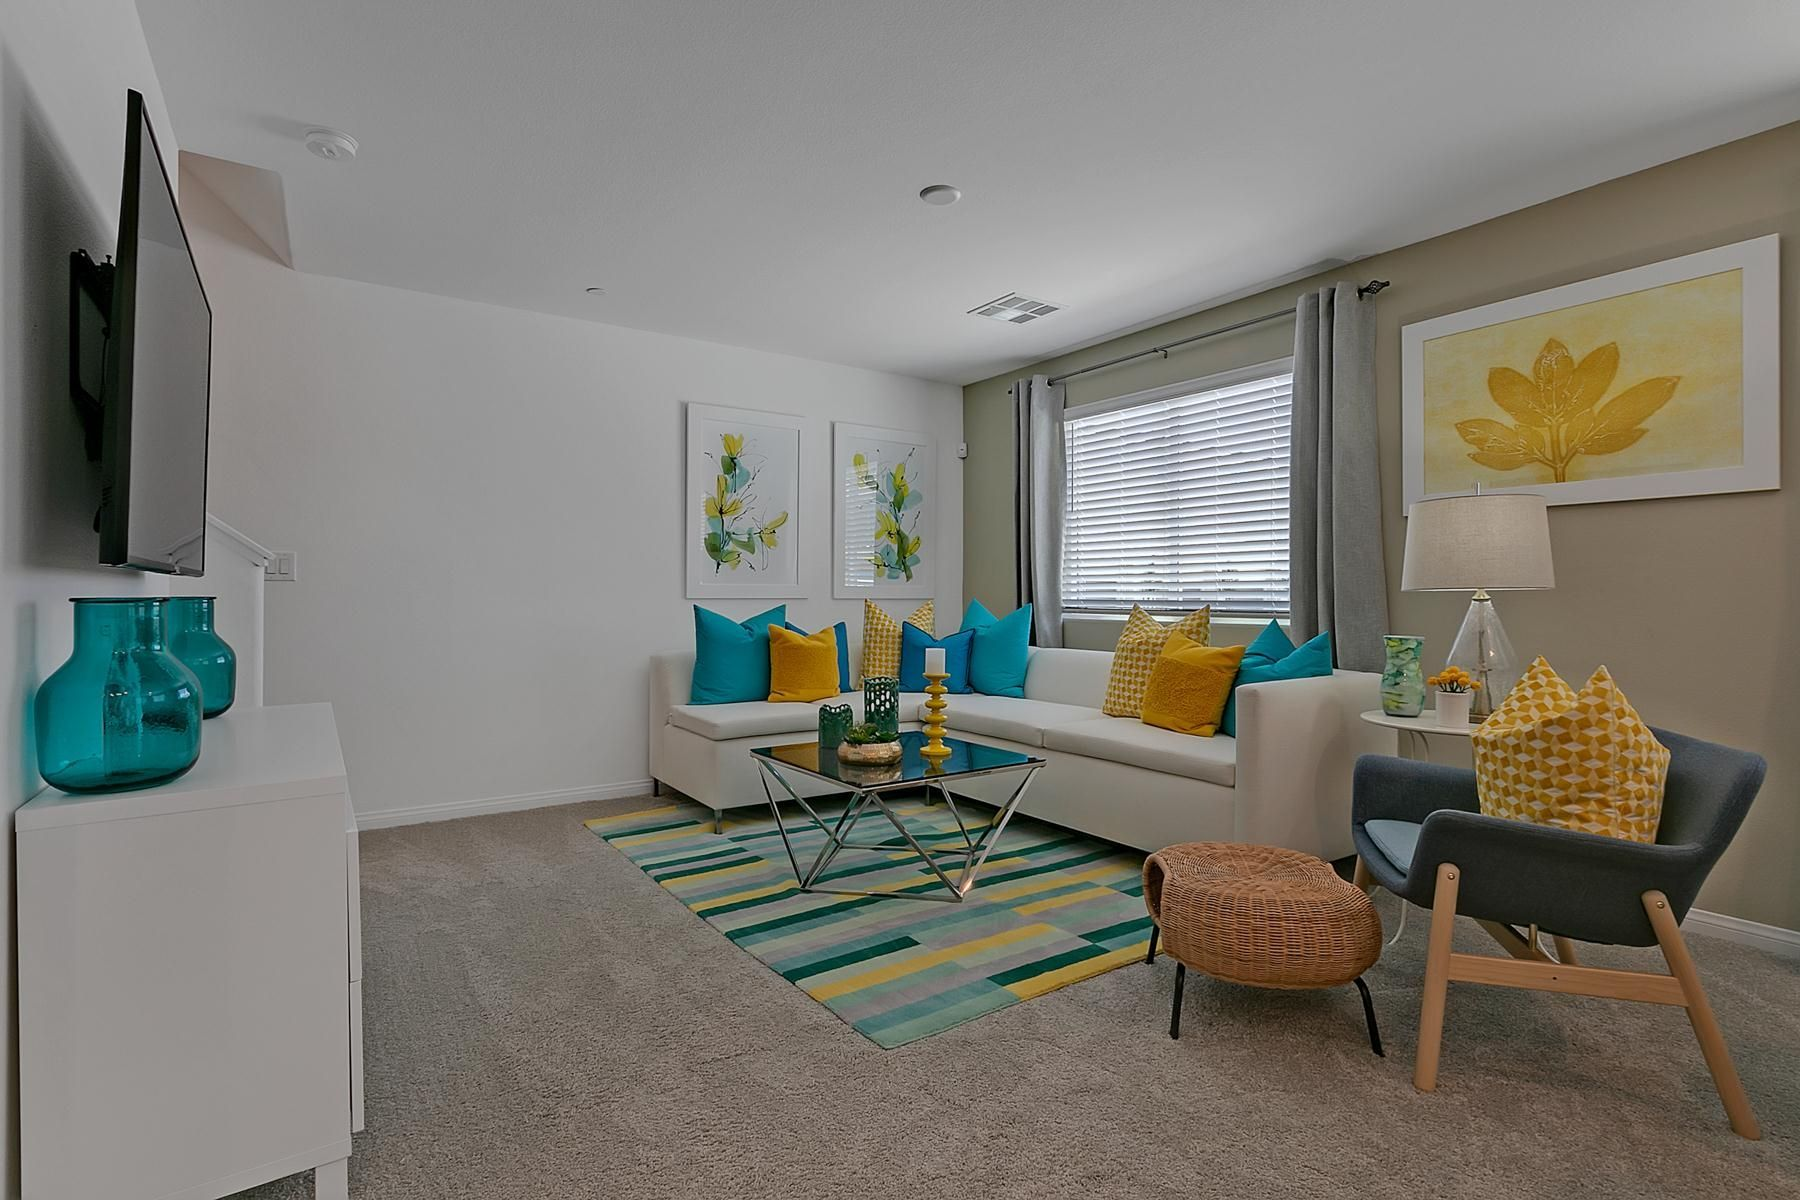 Living Area featured in the Marble Plan 230 By Touchstone Living in Las Vegas, NV